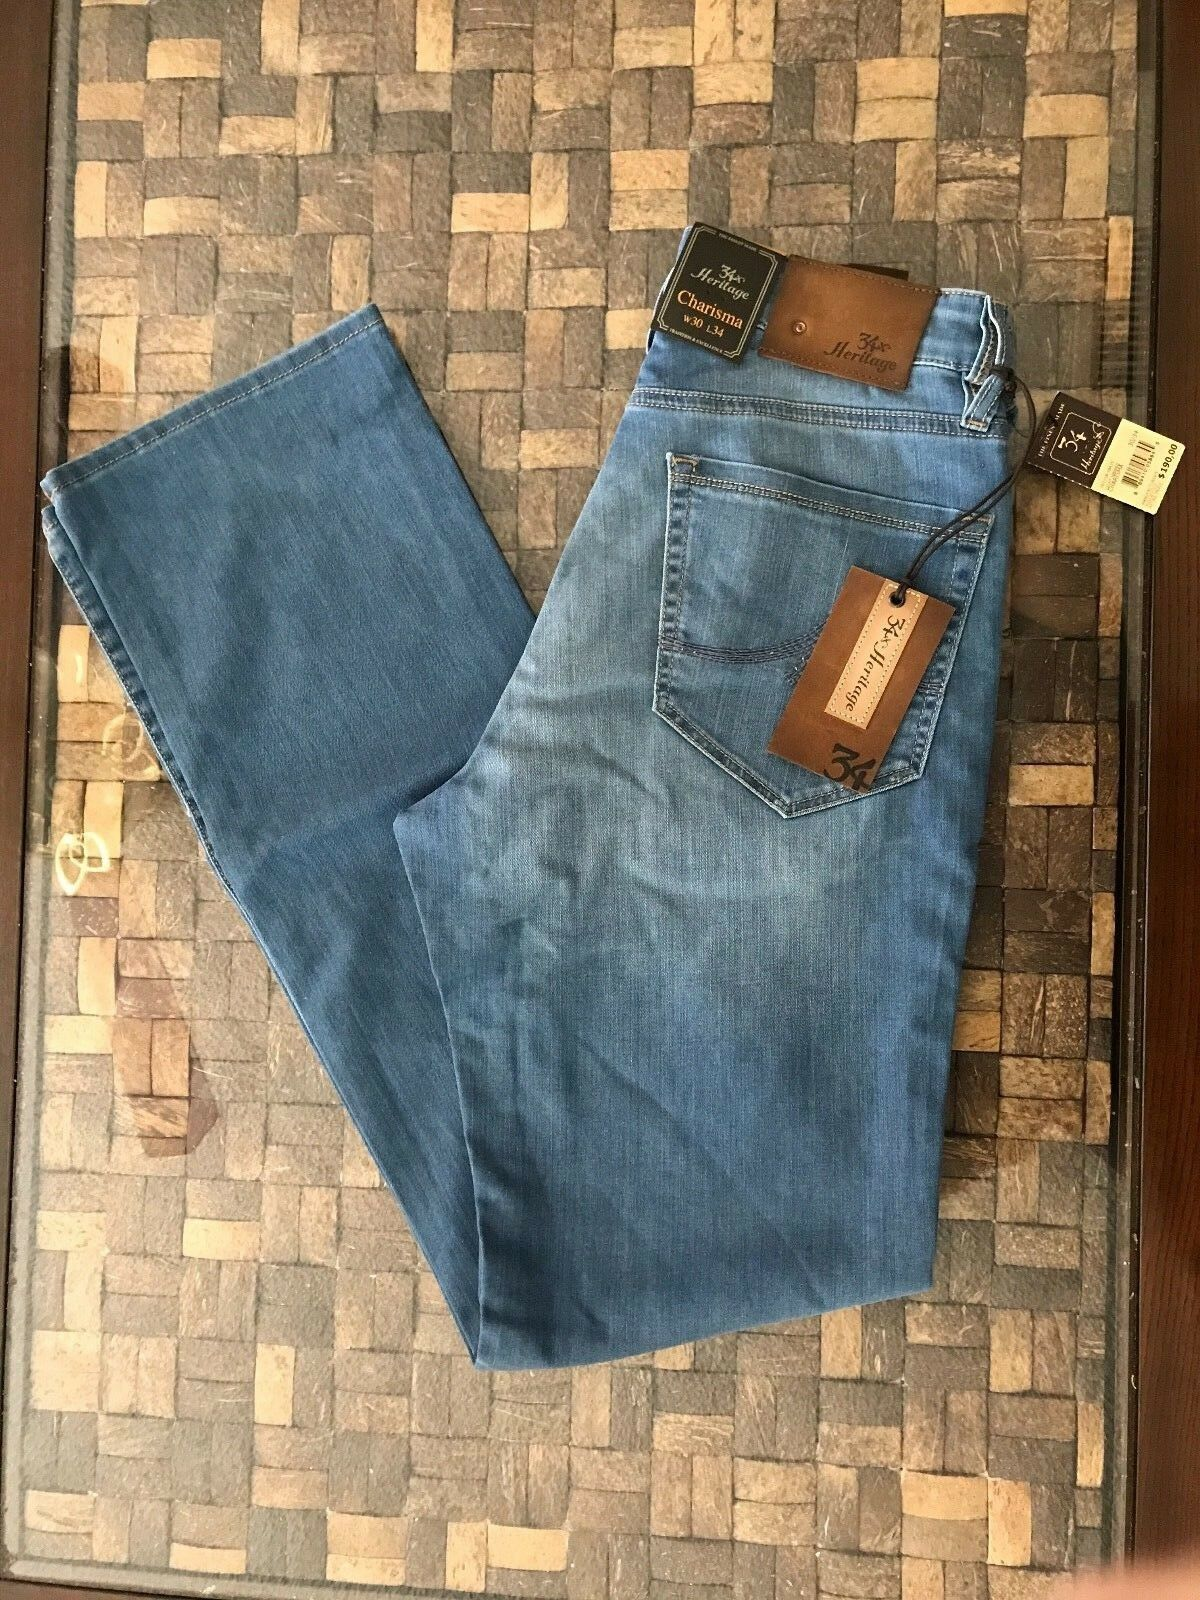 34 Heritage Charisma Light Hawaii Jeans Size 30x34